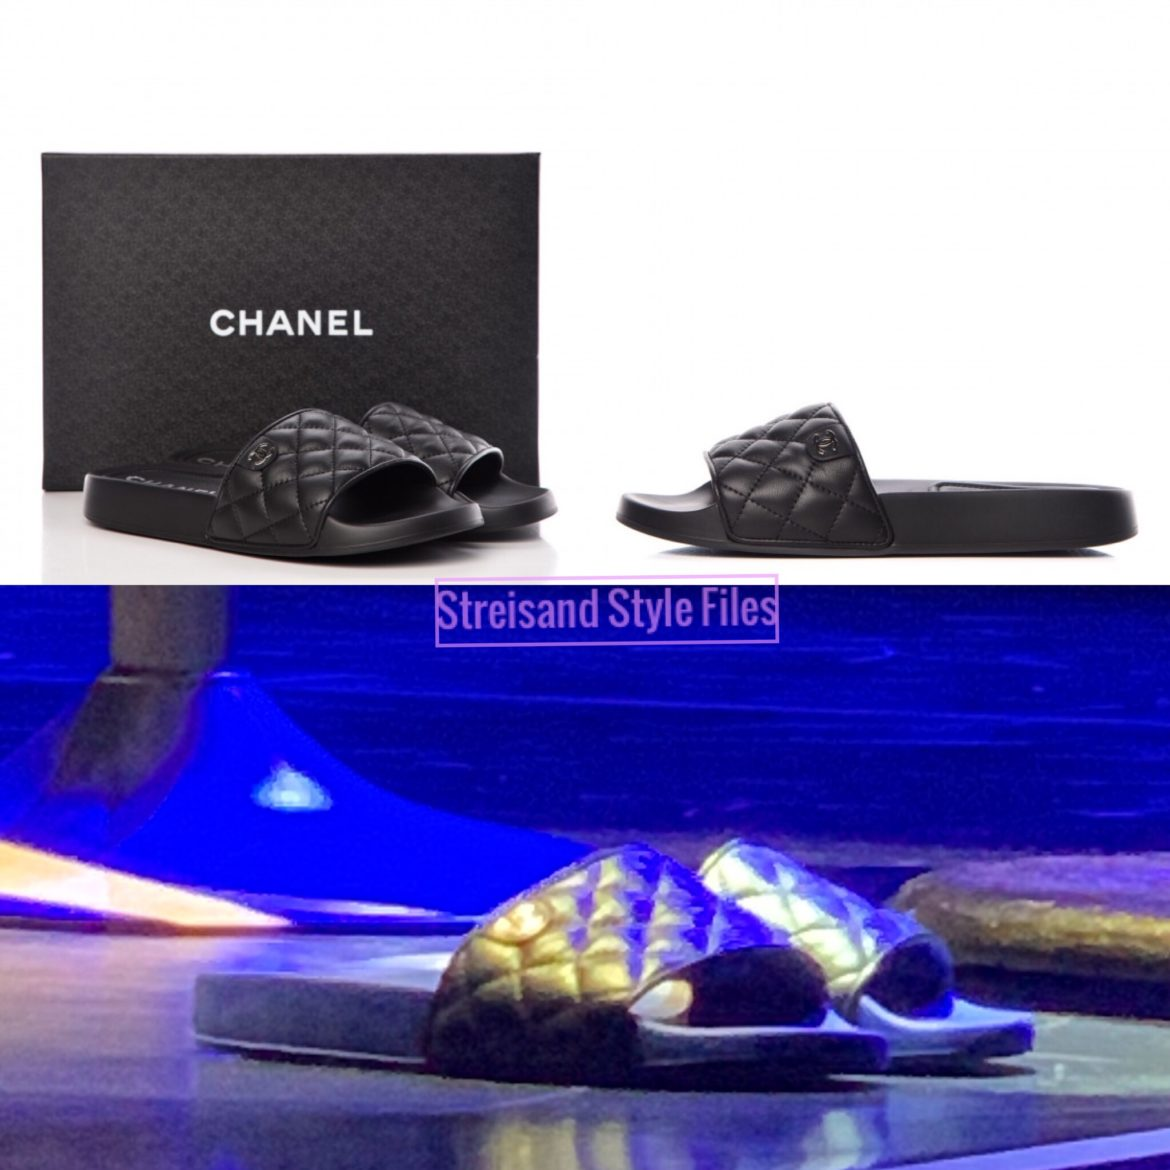 Chanel Sandals At Madison Square Garden 2019